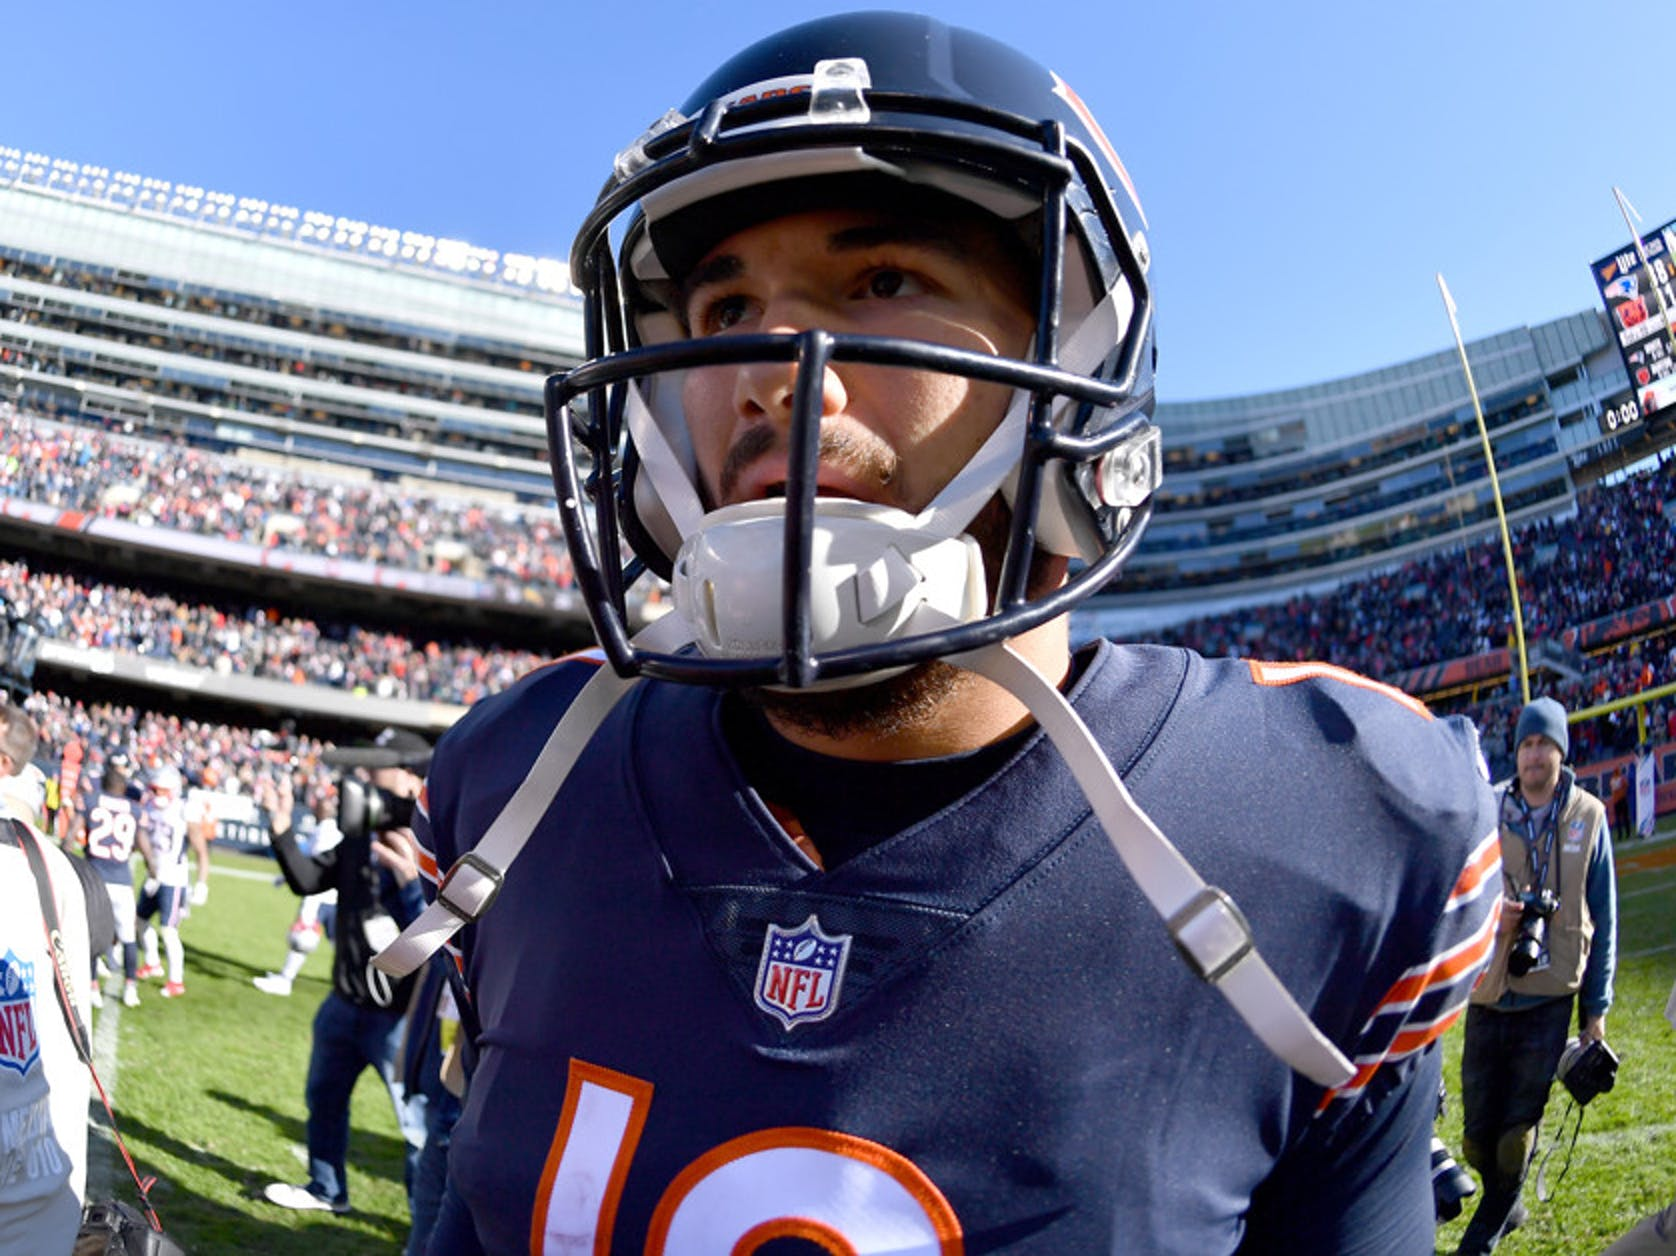 Chicago Bears quarterback Mitchell Trubisky (10) walks off the field after the game between the Chicago Bears and the New England Patriots on October 21, 2018 at Soldier Field in Chicago, Illinois.